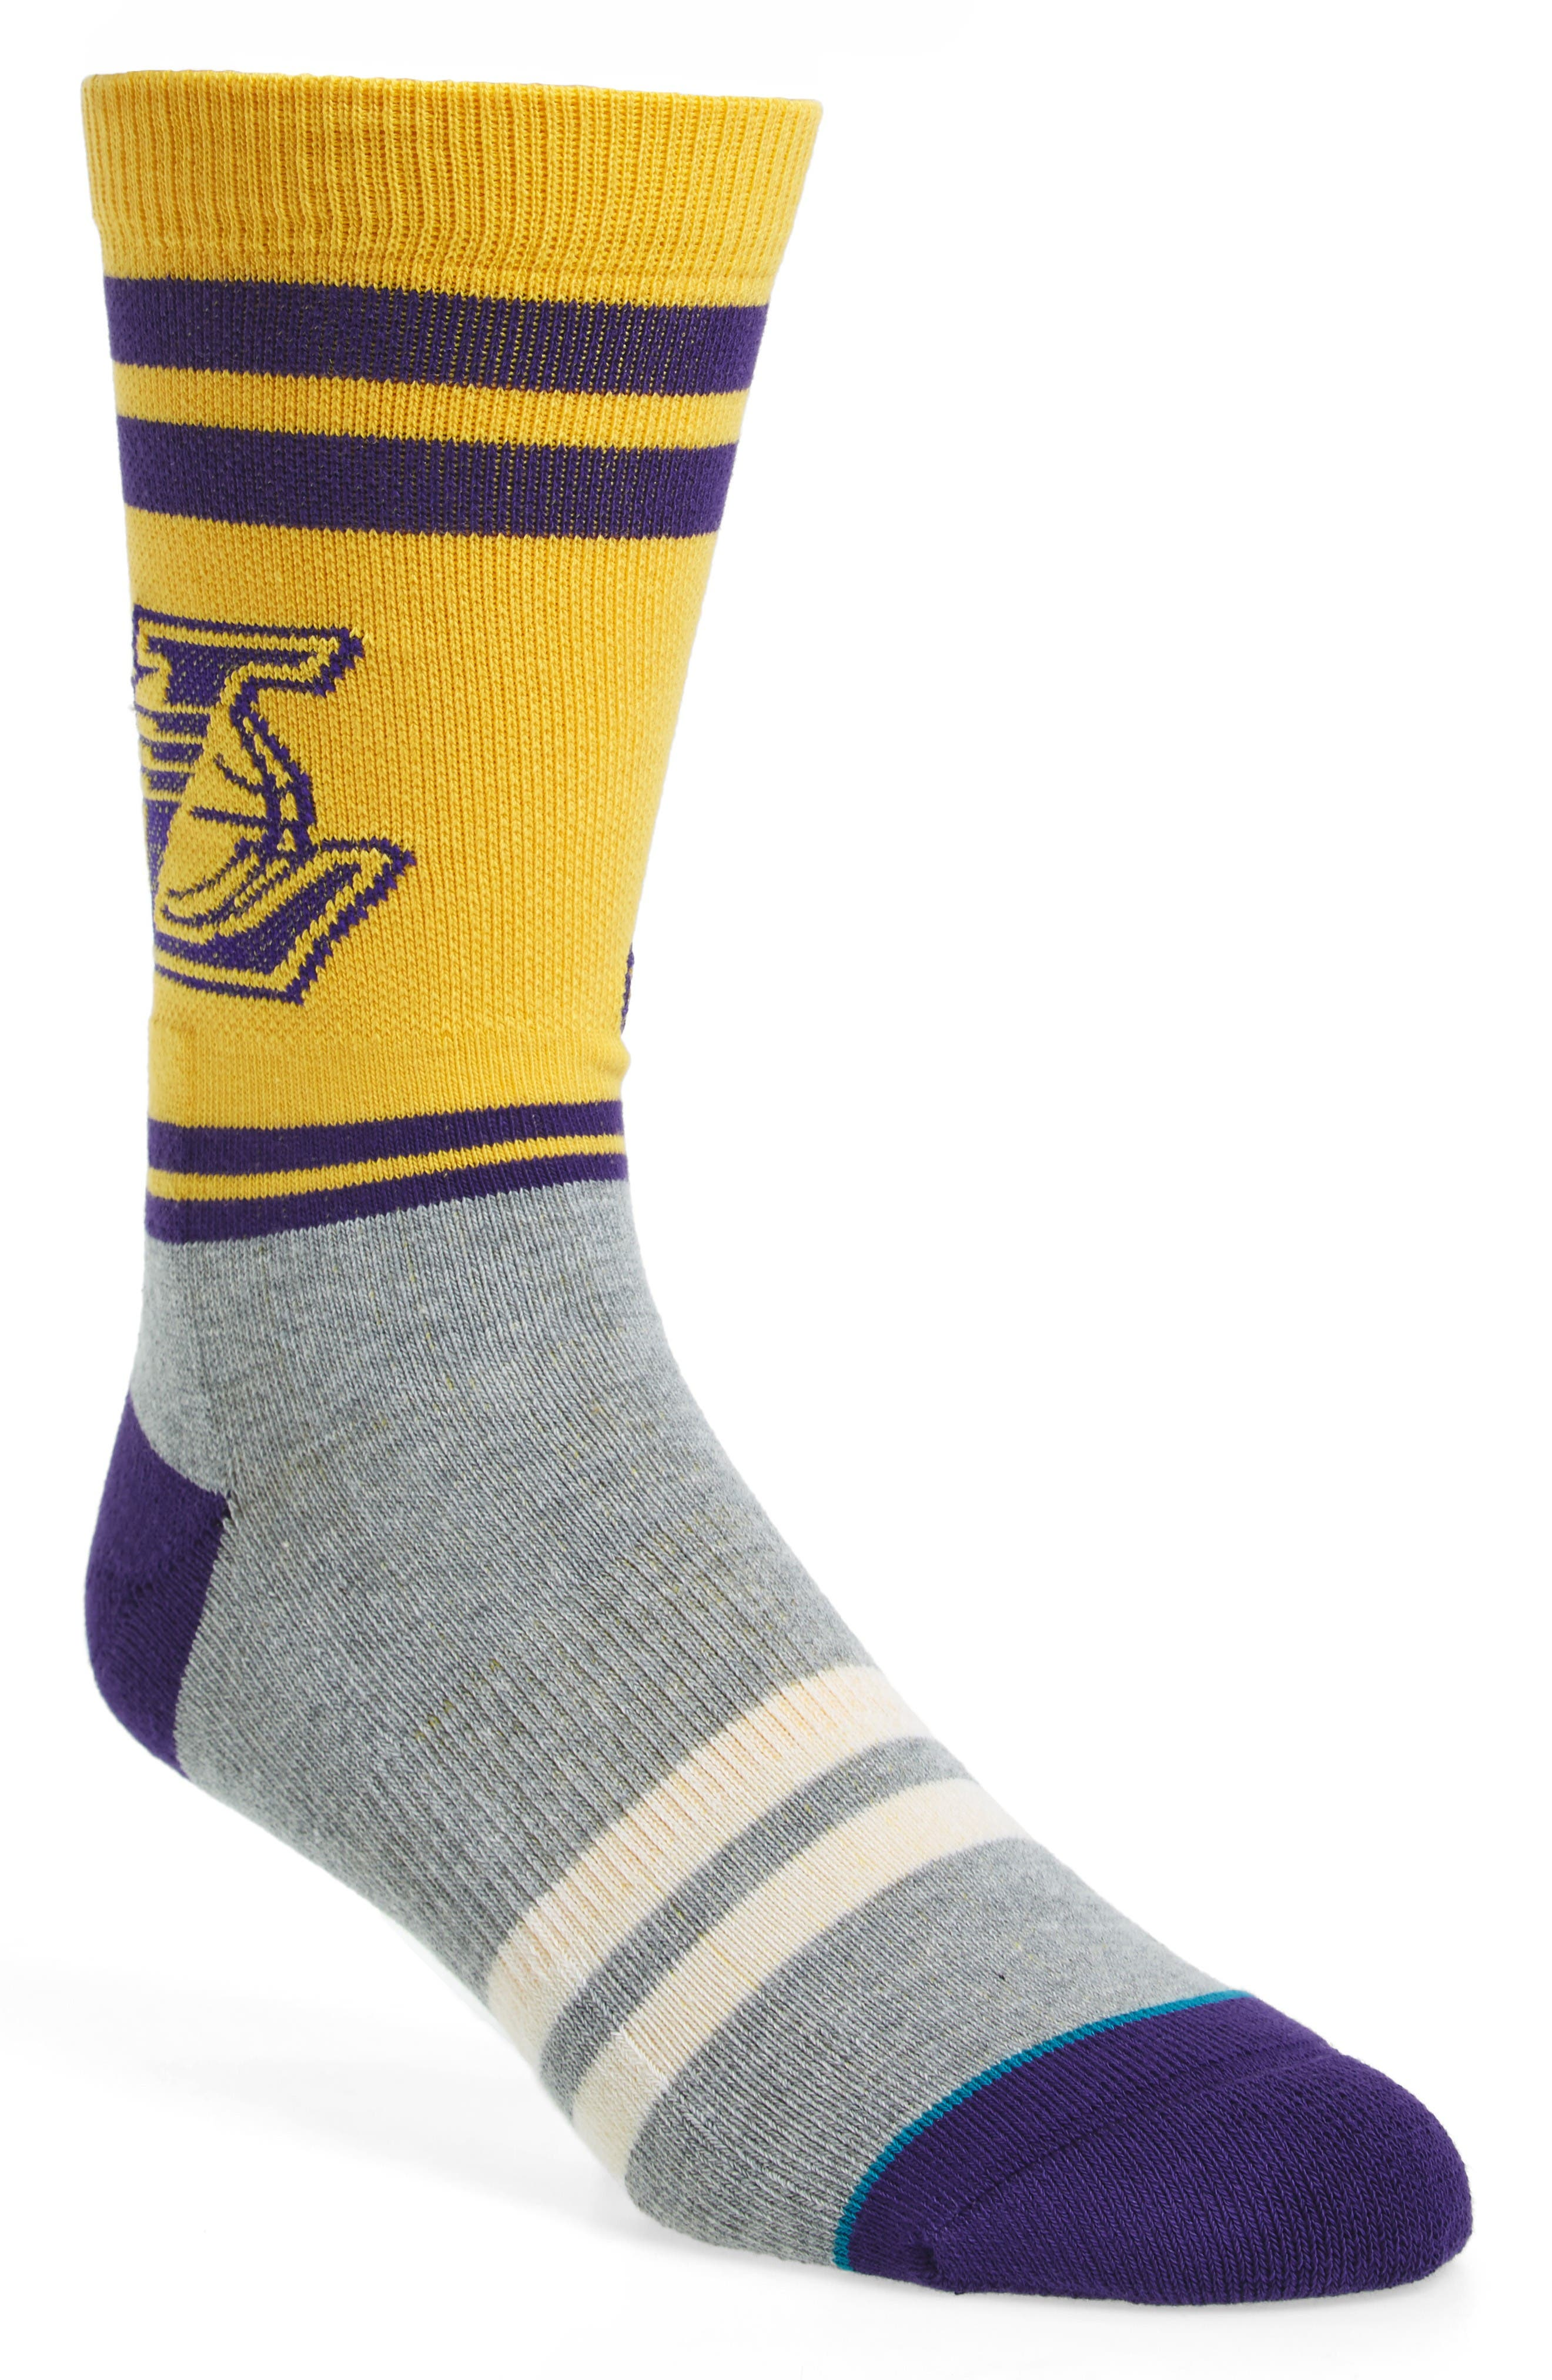 Alternate Image 1 Selected - Stance City Gym Los Angeles Lakers Socks